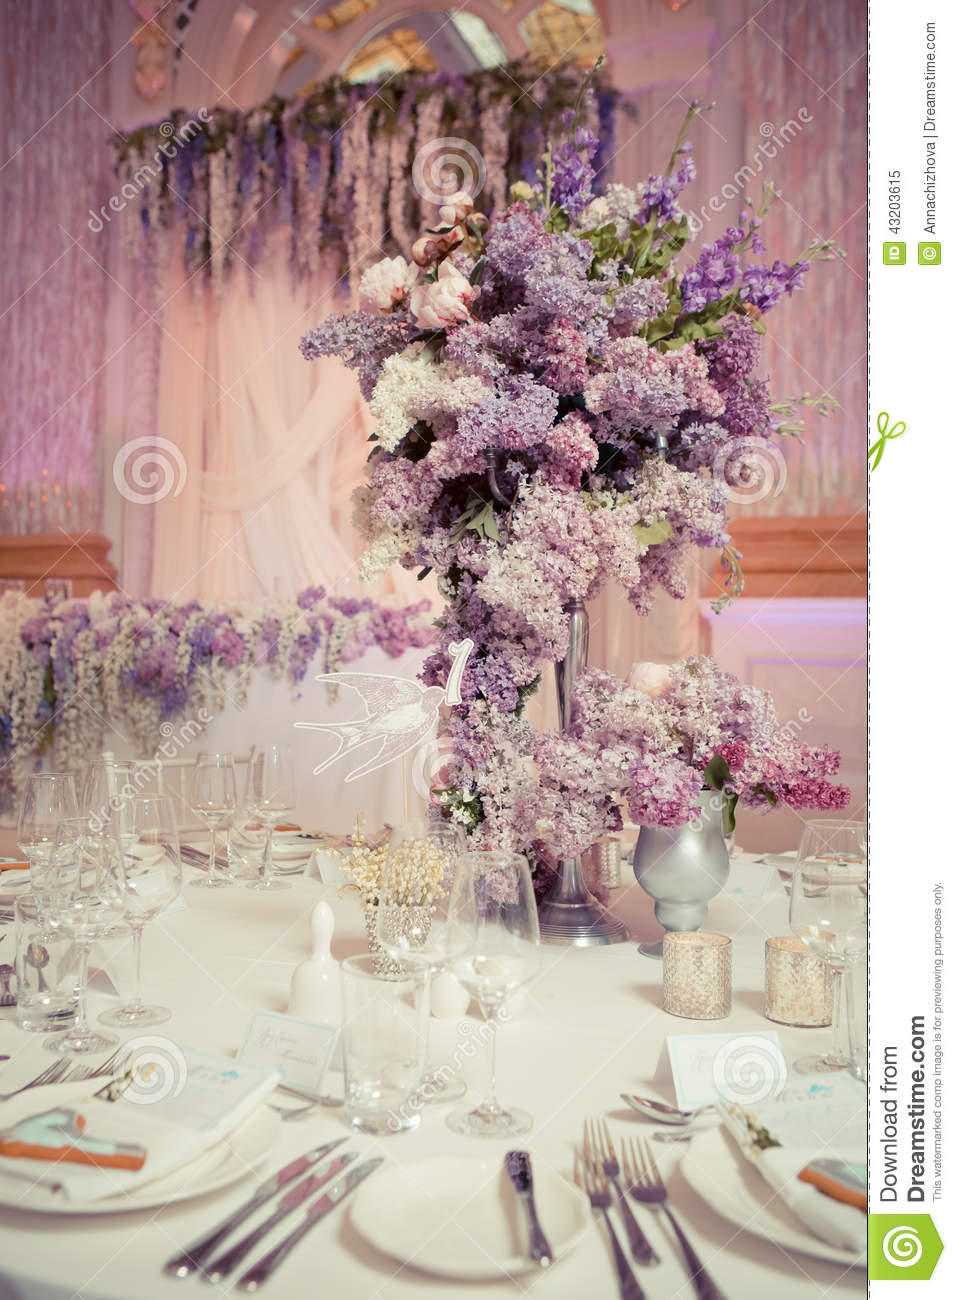 Festive table decoration in lilac colours stock image image of festive table decoration in lilac colours beautiful birthday junglespirit Images